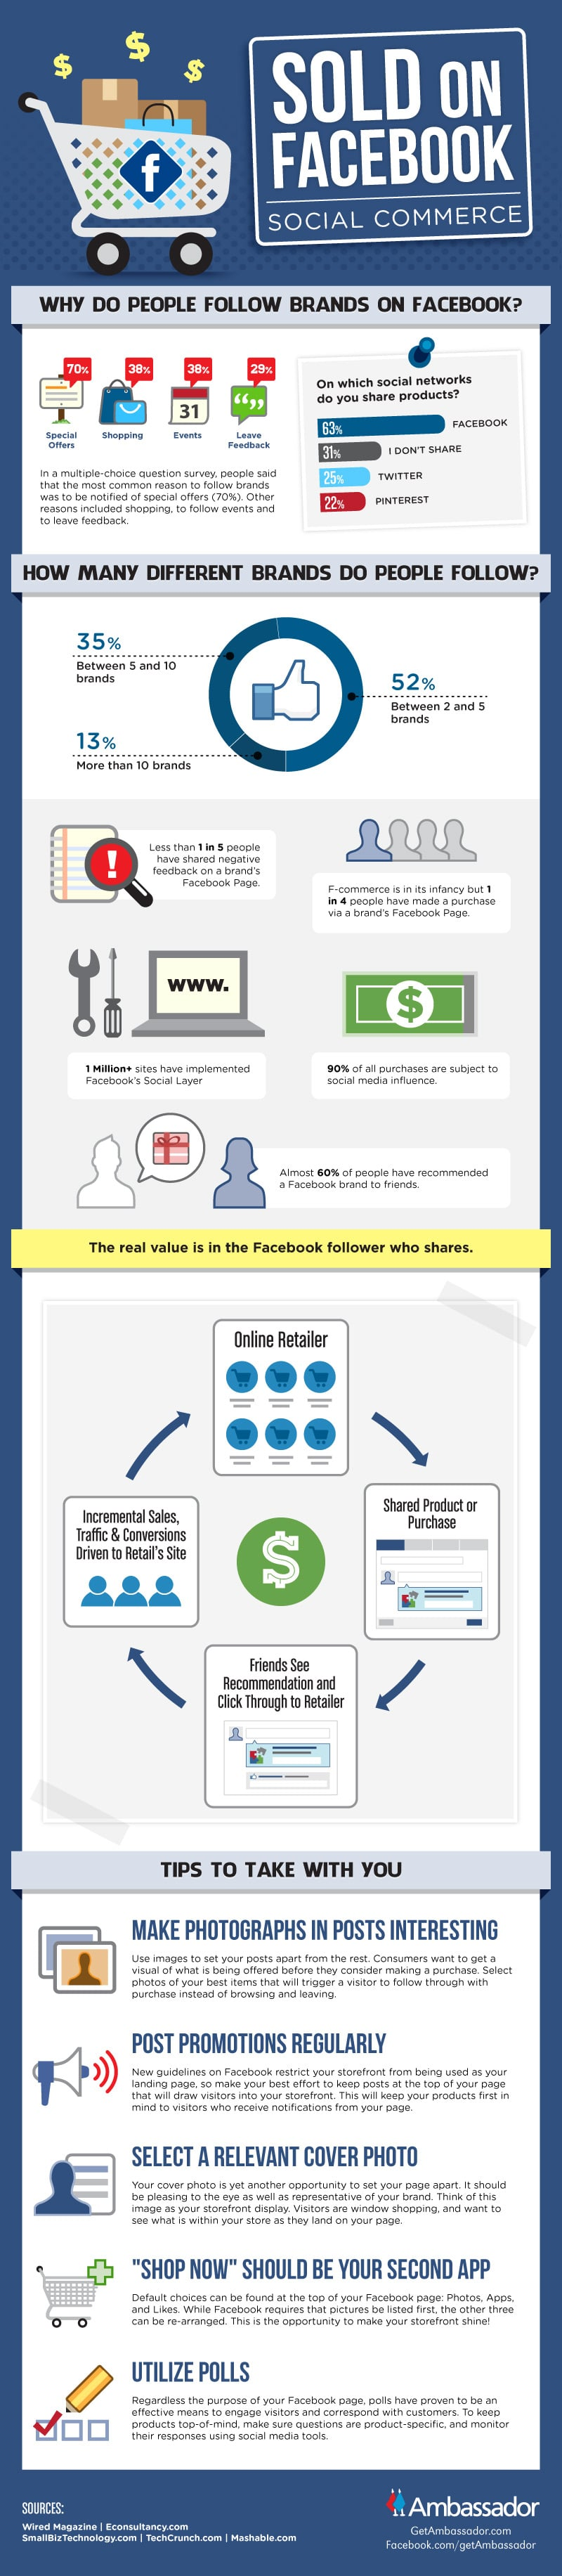 How Social Commerce Could Be A Business Booster [Infographic]